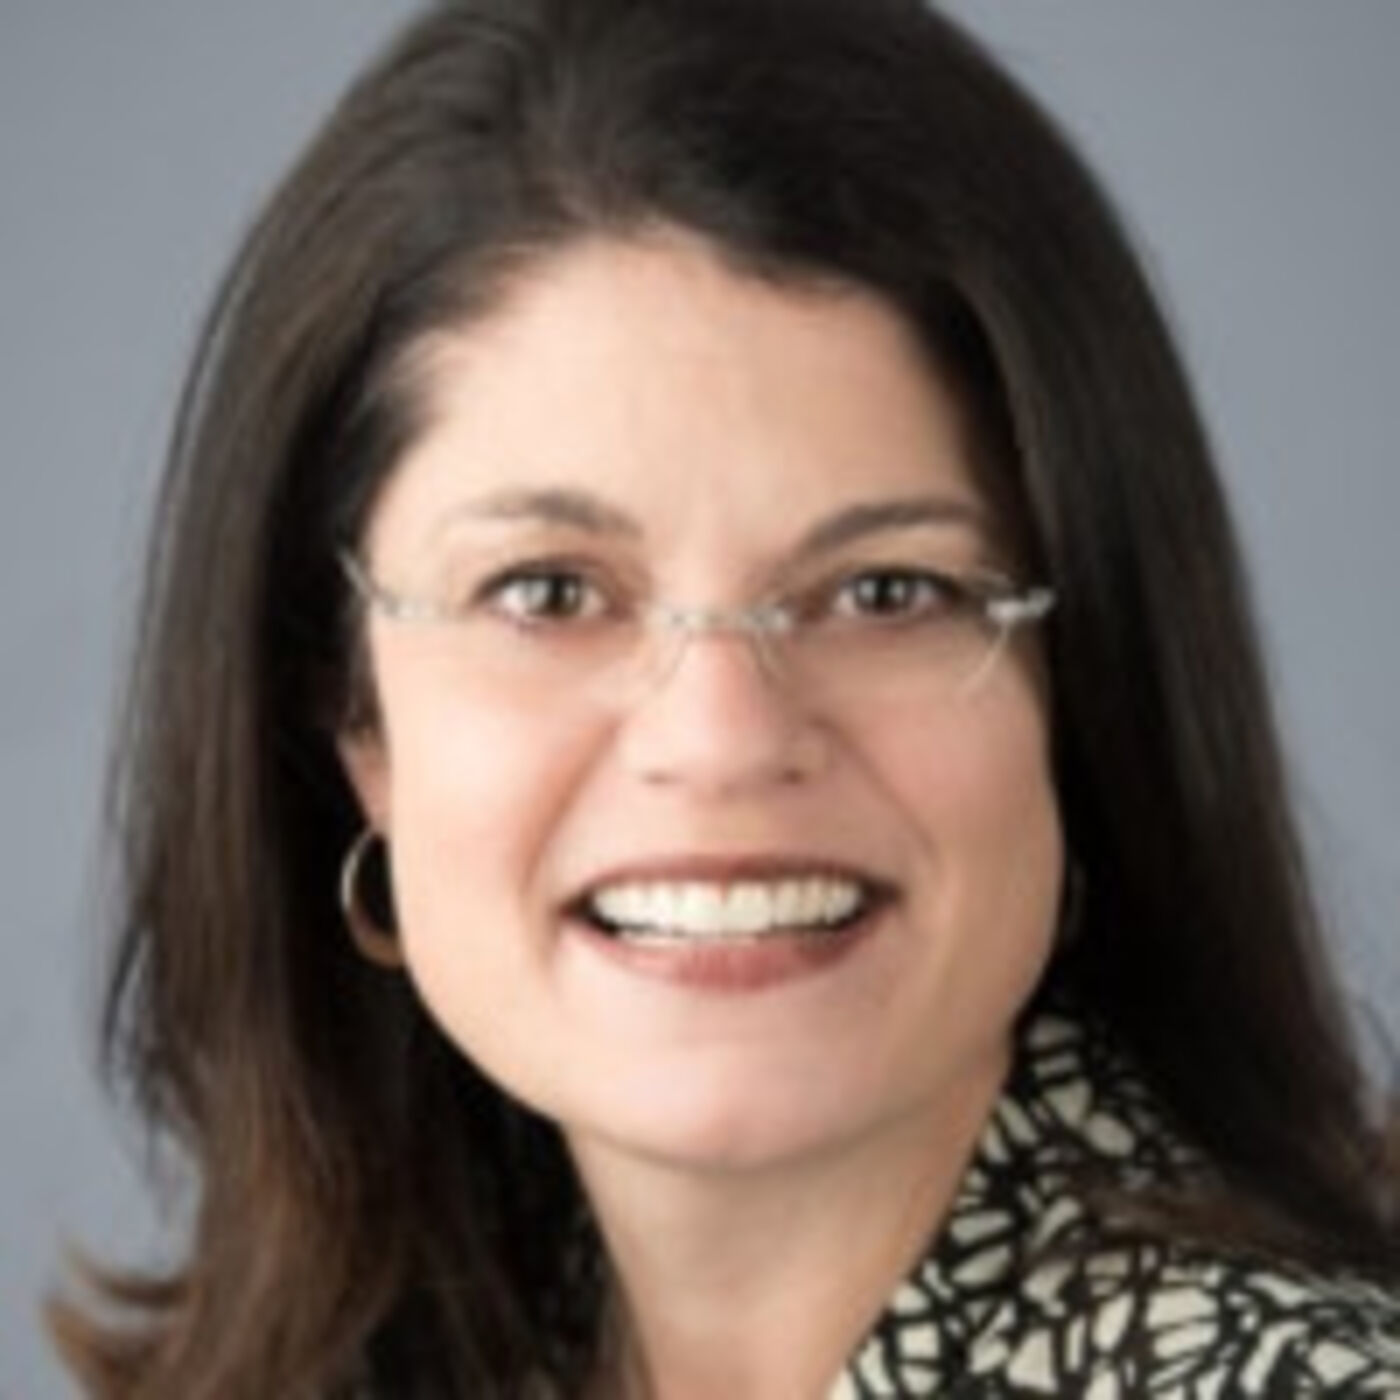 135th Episode with Linda Brenner, Founder of Talent Growth Advisors